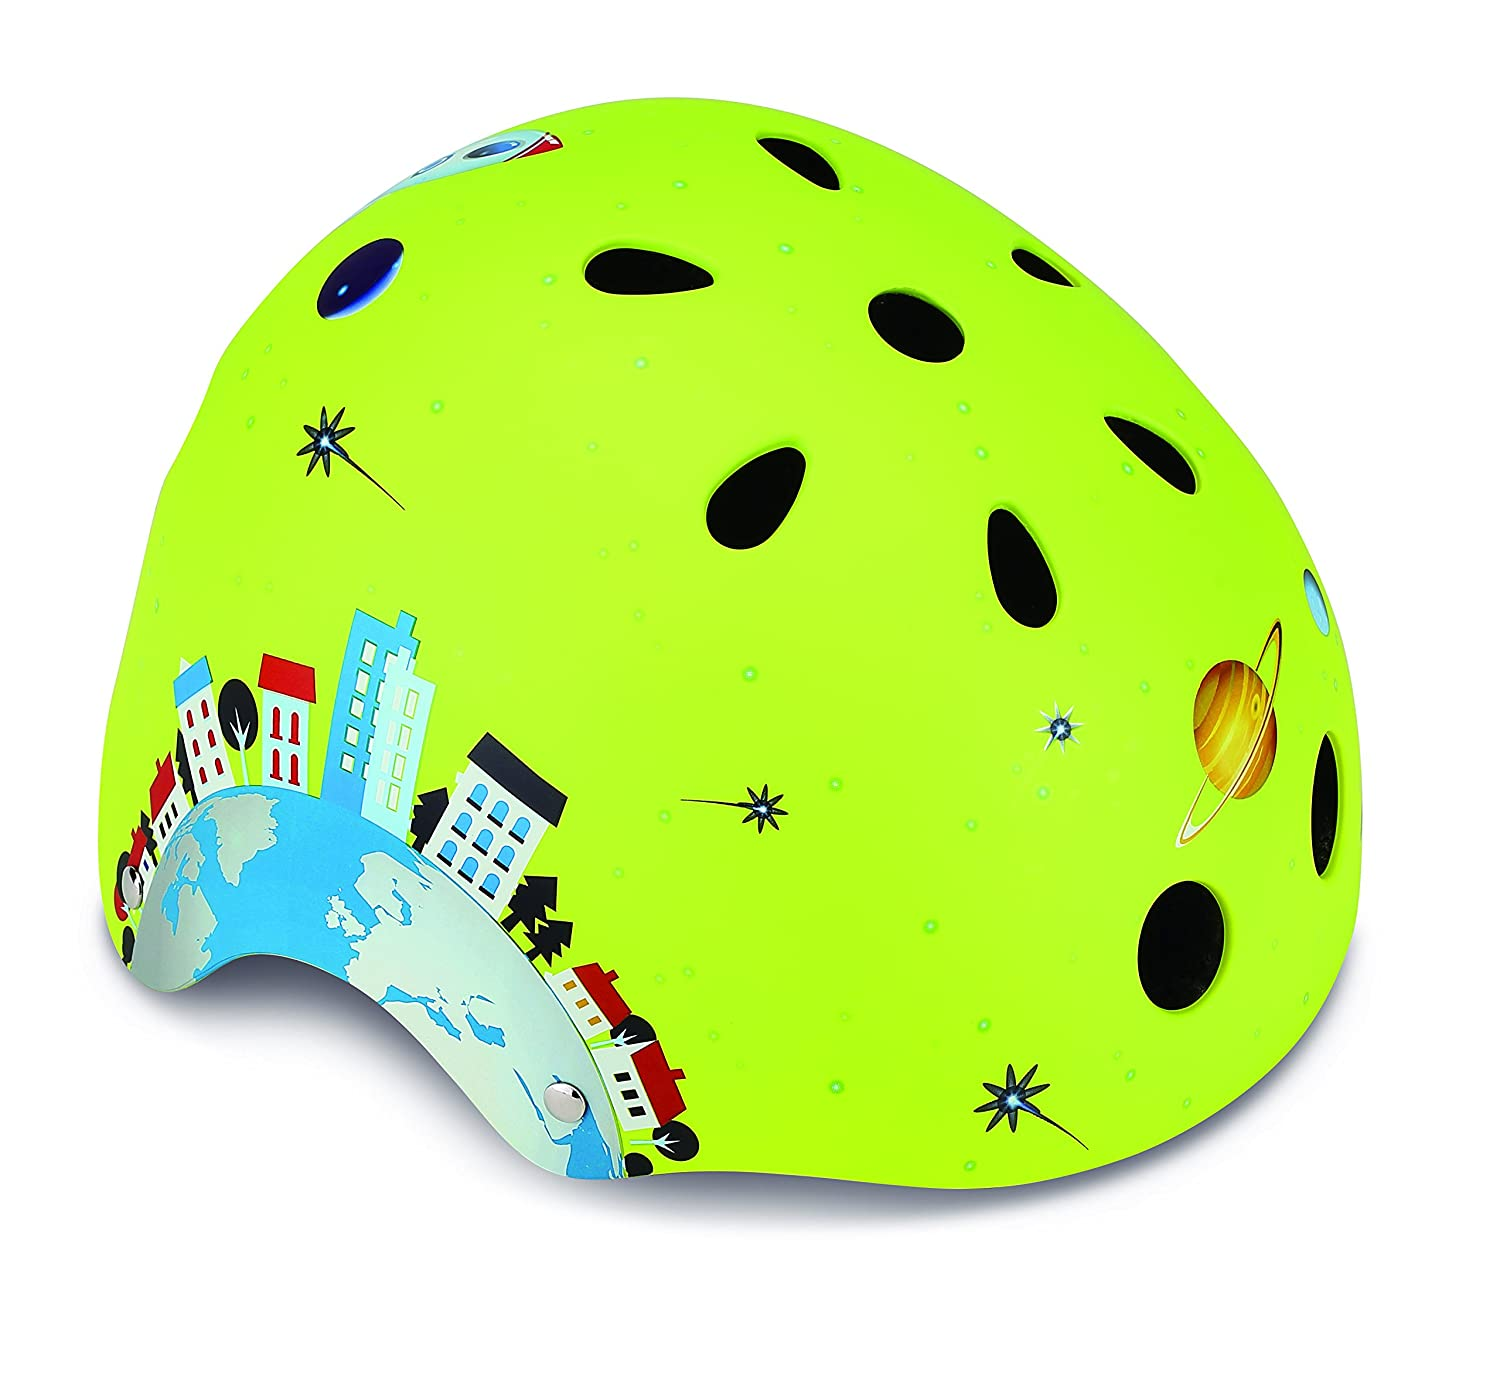 Globber Enfants Junior, Rocket S (51–54 cm) Casque, Vert, XS/S Rocket S (51-54 cm) Casque GLOOR|#Globber 500-005